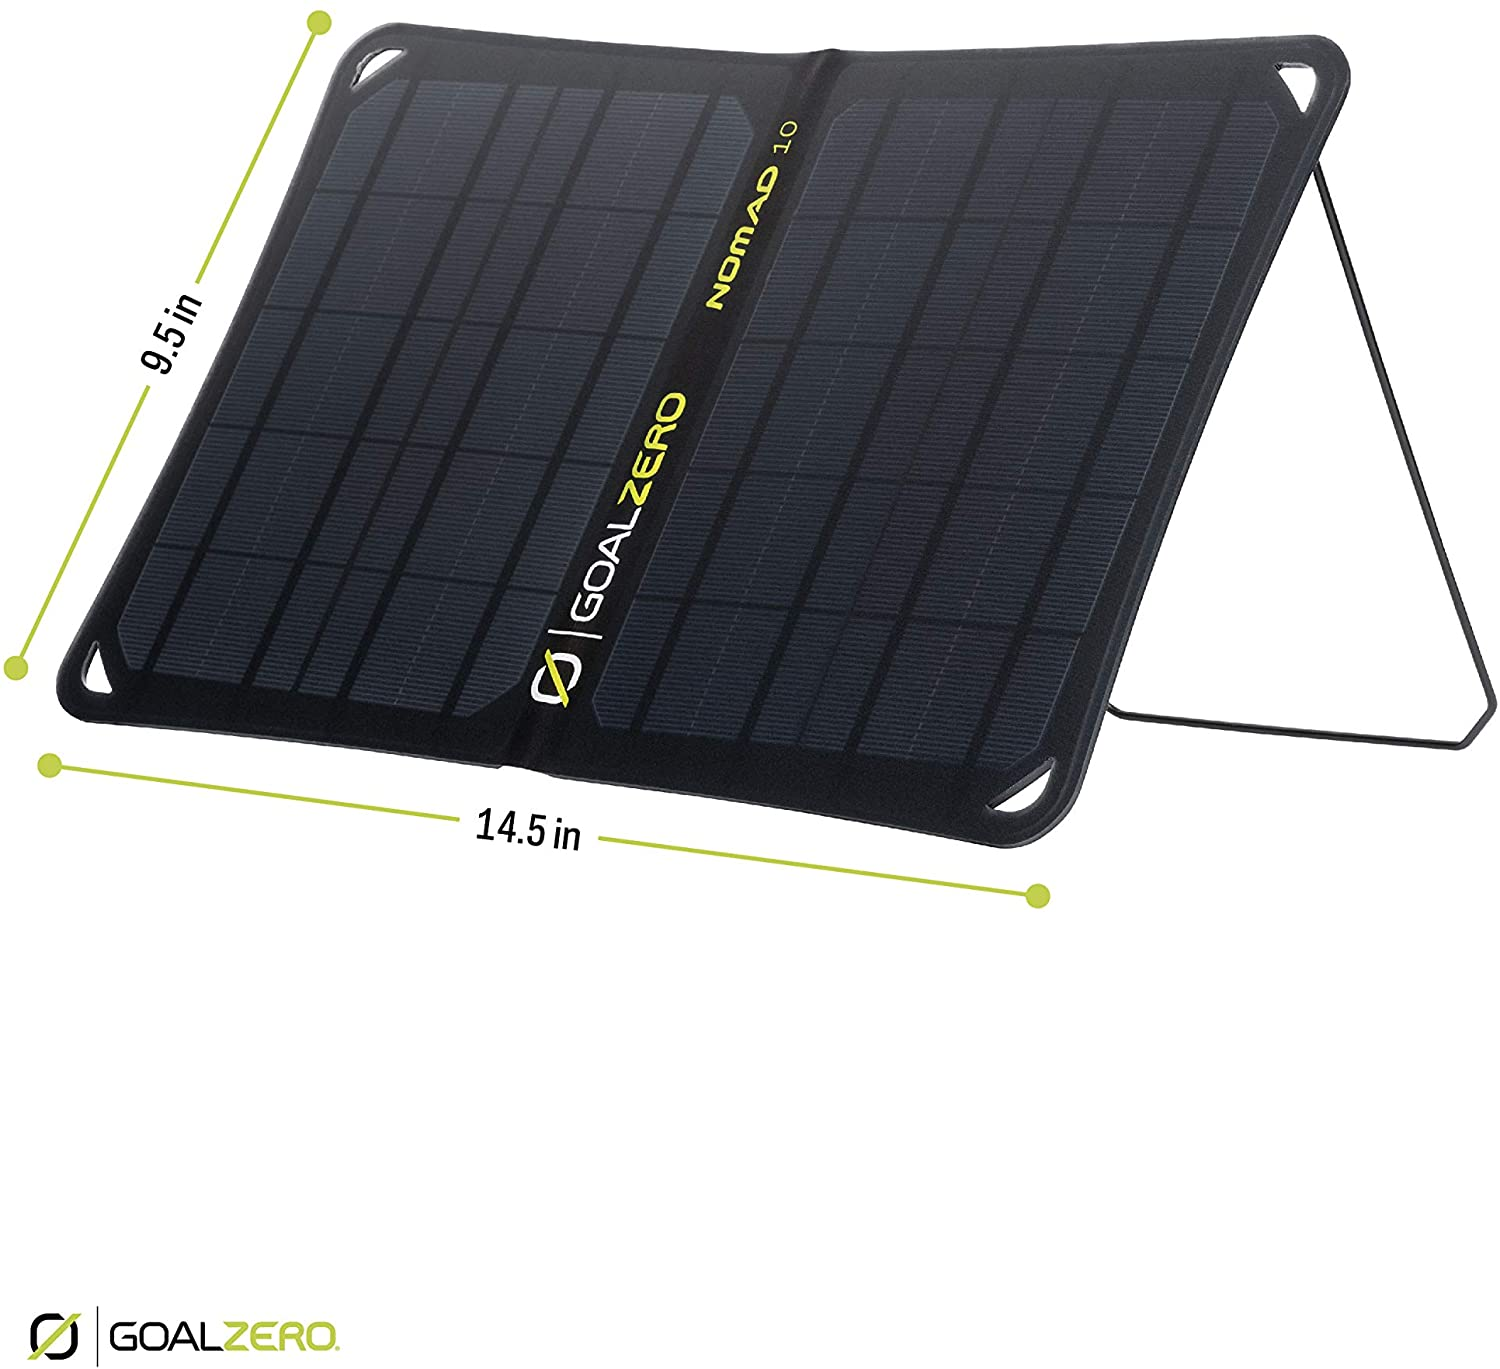 Goal Zero Nomad 10, Foldable Monocrystalline 10 Watt Solar Panel with USB Port, Portable Solar